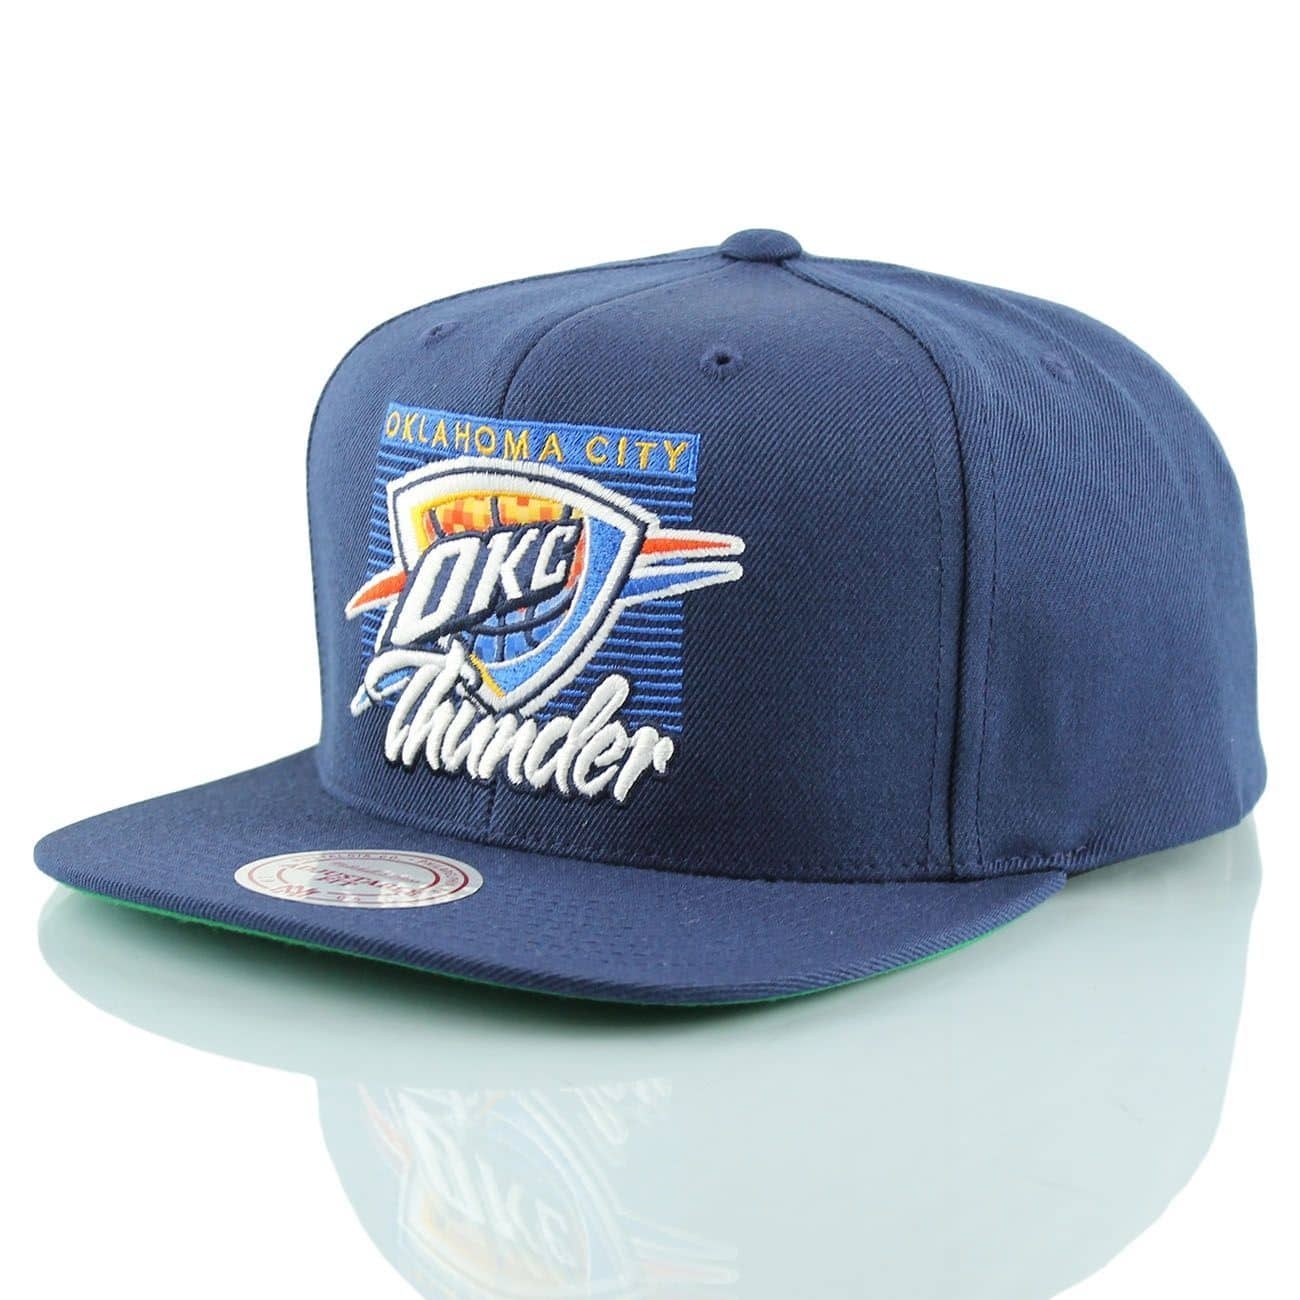 88545072457 Mitchell   Ness Oklahoma City Thunder Easy 3 Digital Snapback NBA Cap Navy